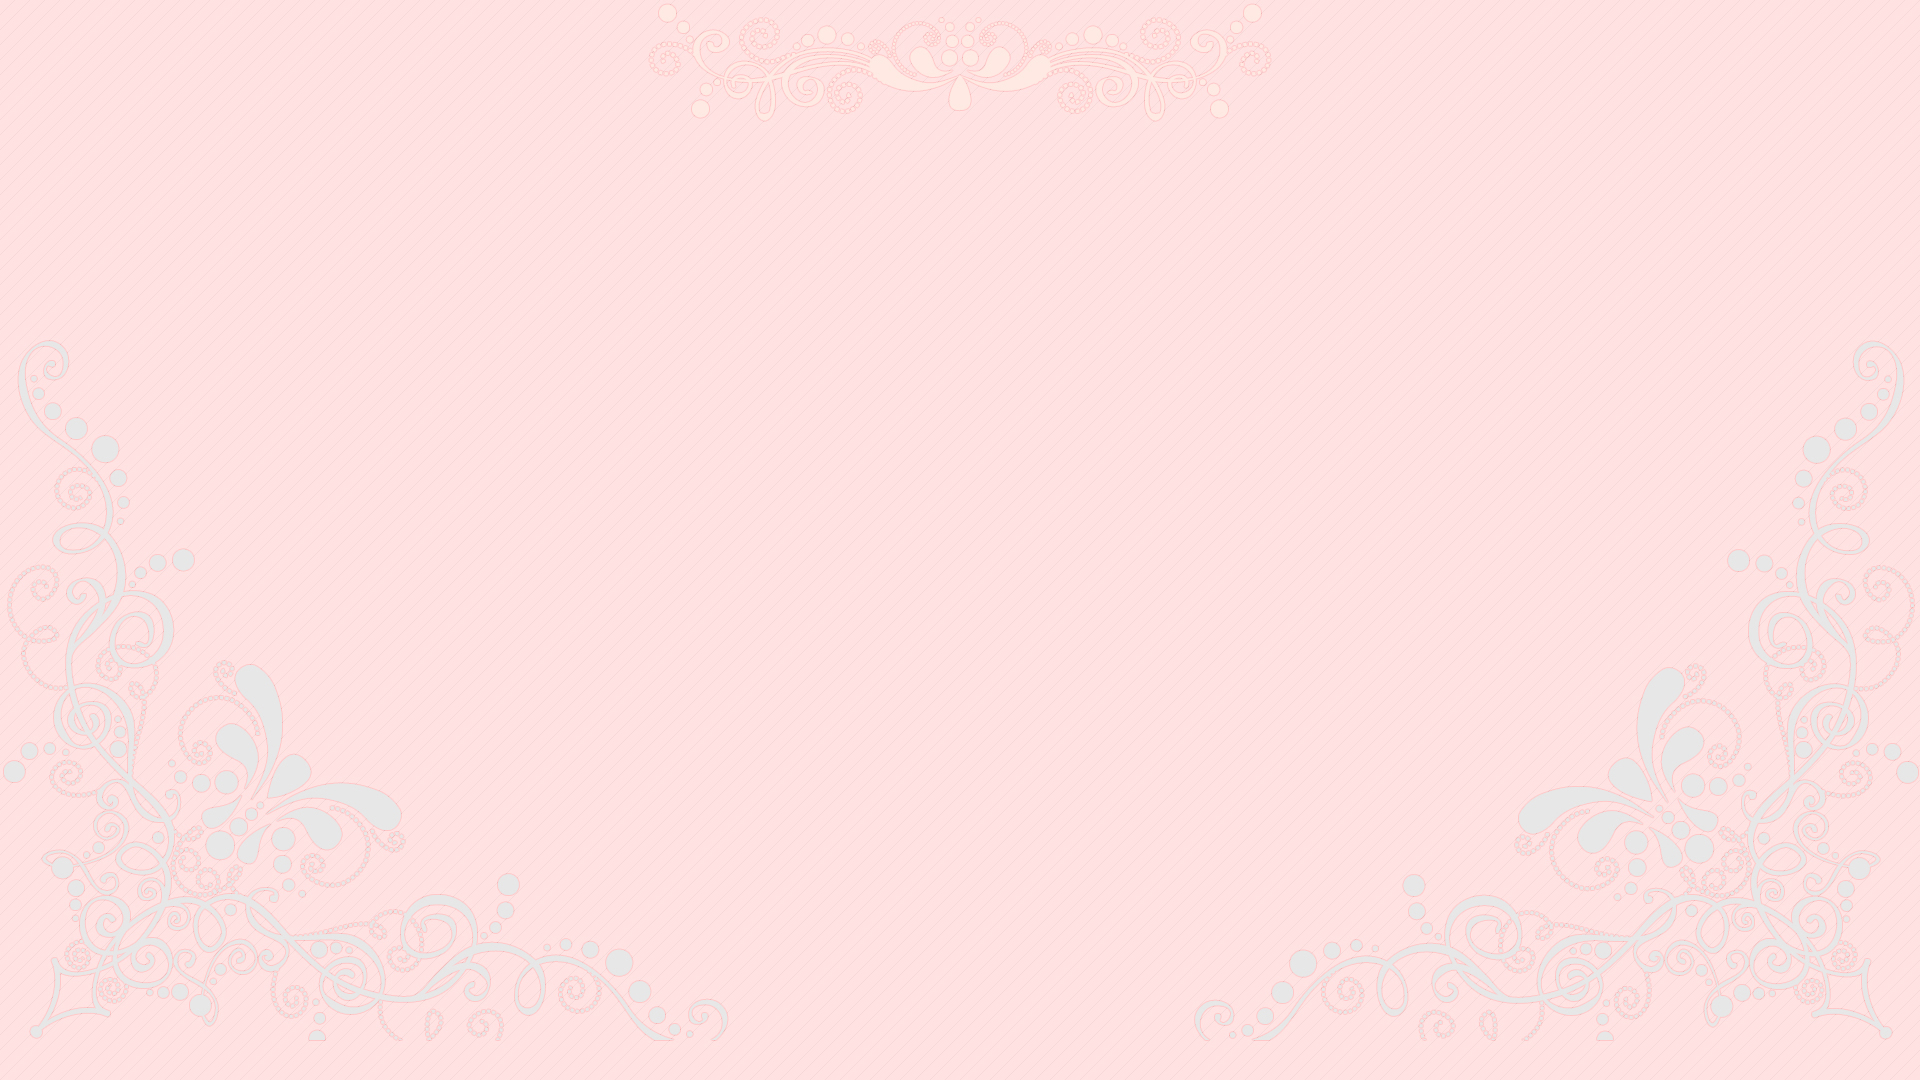 pastel desktop wallpaper - photo #7